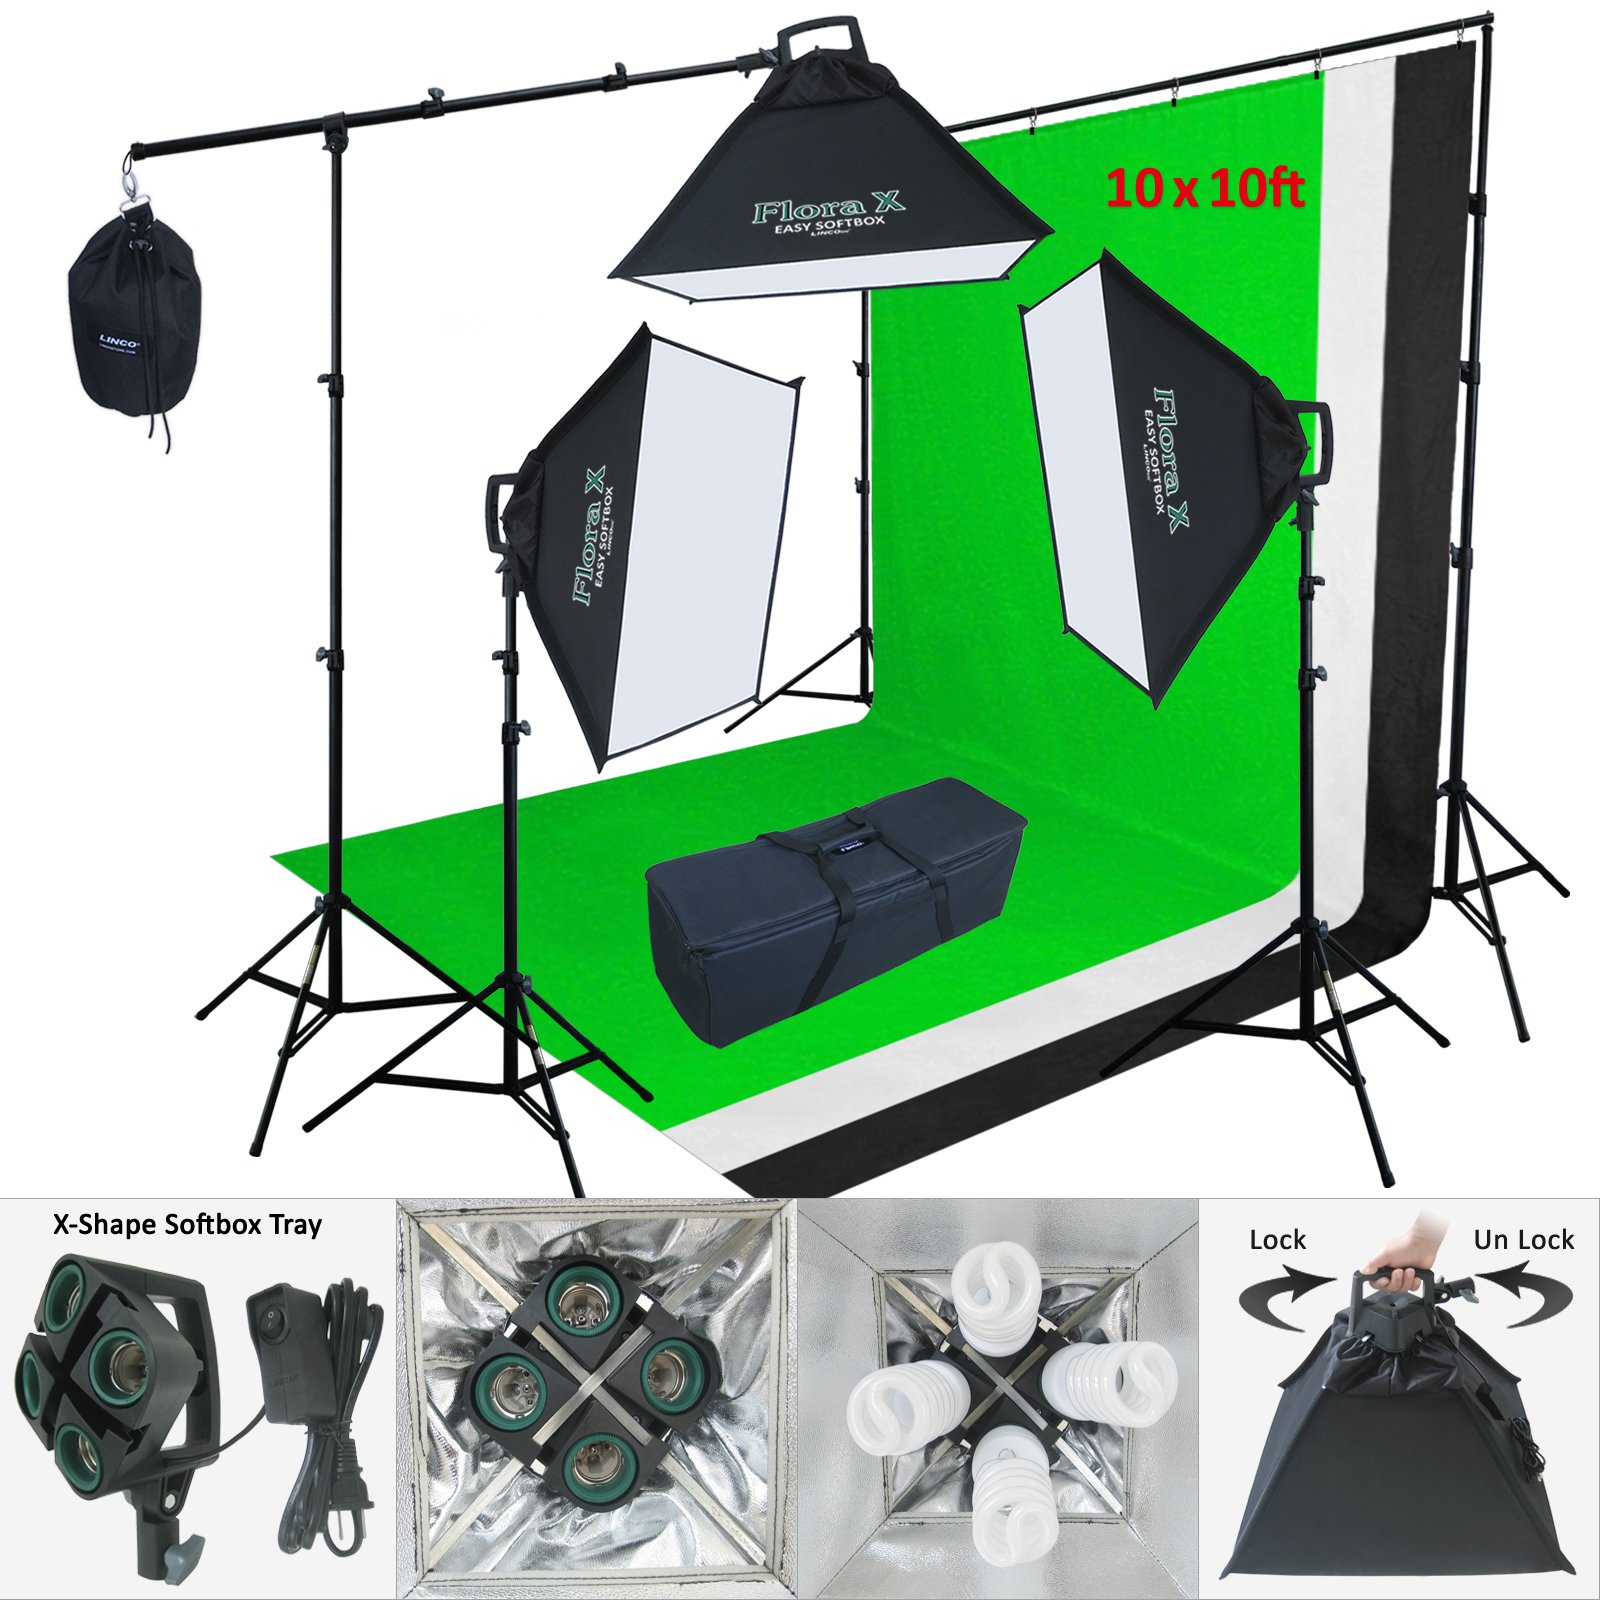 Linco Lincostore 2400 Watt Flora X Photo Studio Lighting 10x10 Feet 3 Backdrops Photography Background Stand Light Kit AM143